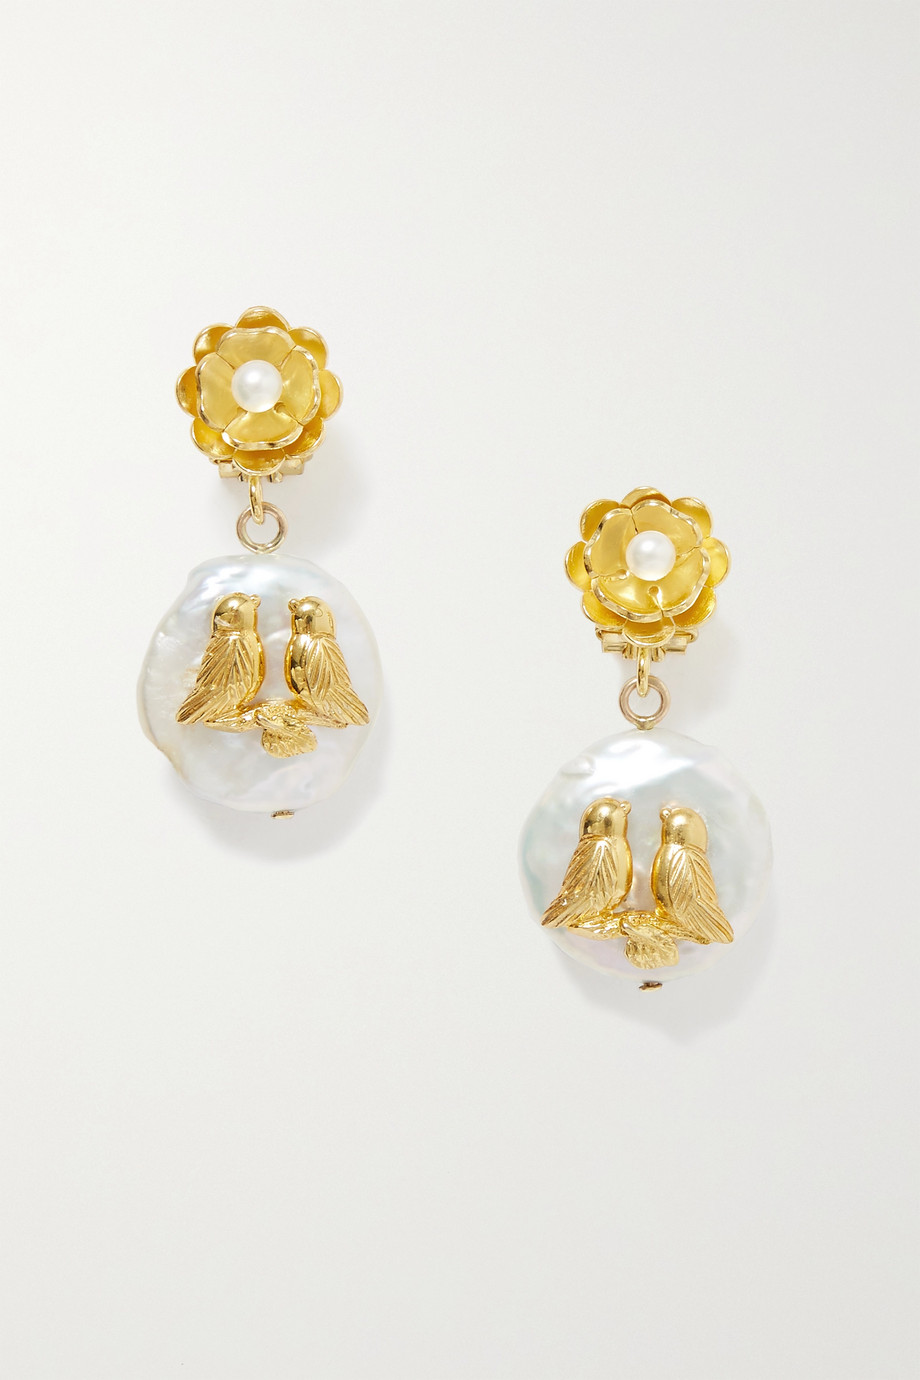 Of Rare Origin Inseparables gold vermeil pearl earrings